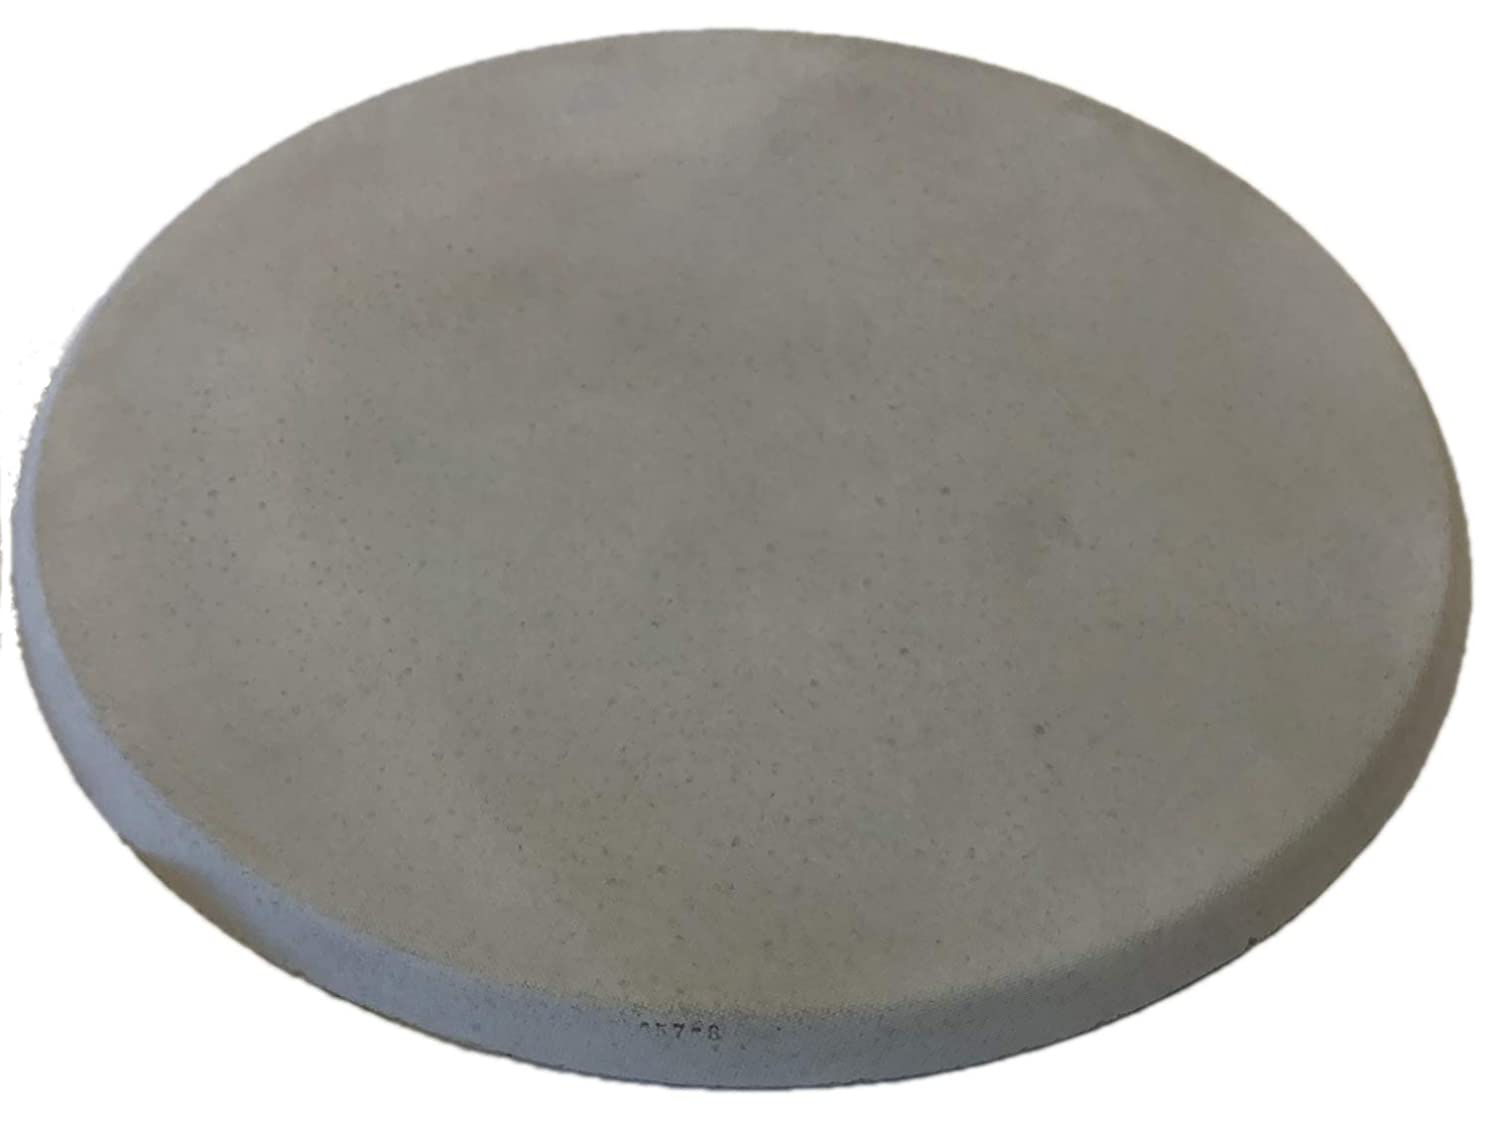 FibraMent-D Round Home Oven Pizza Baking Stone 19-Inch Round